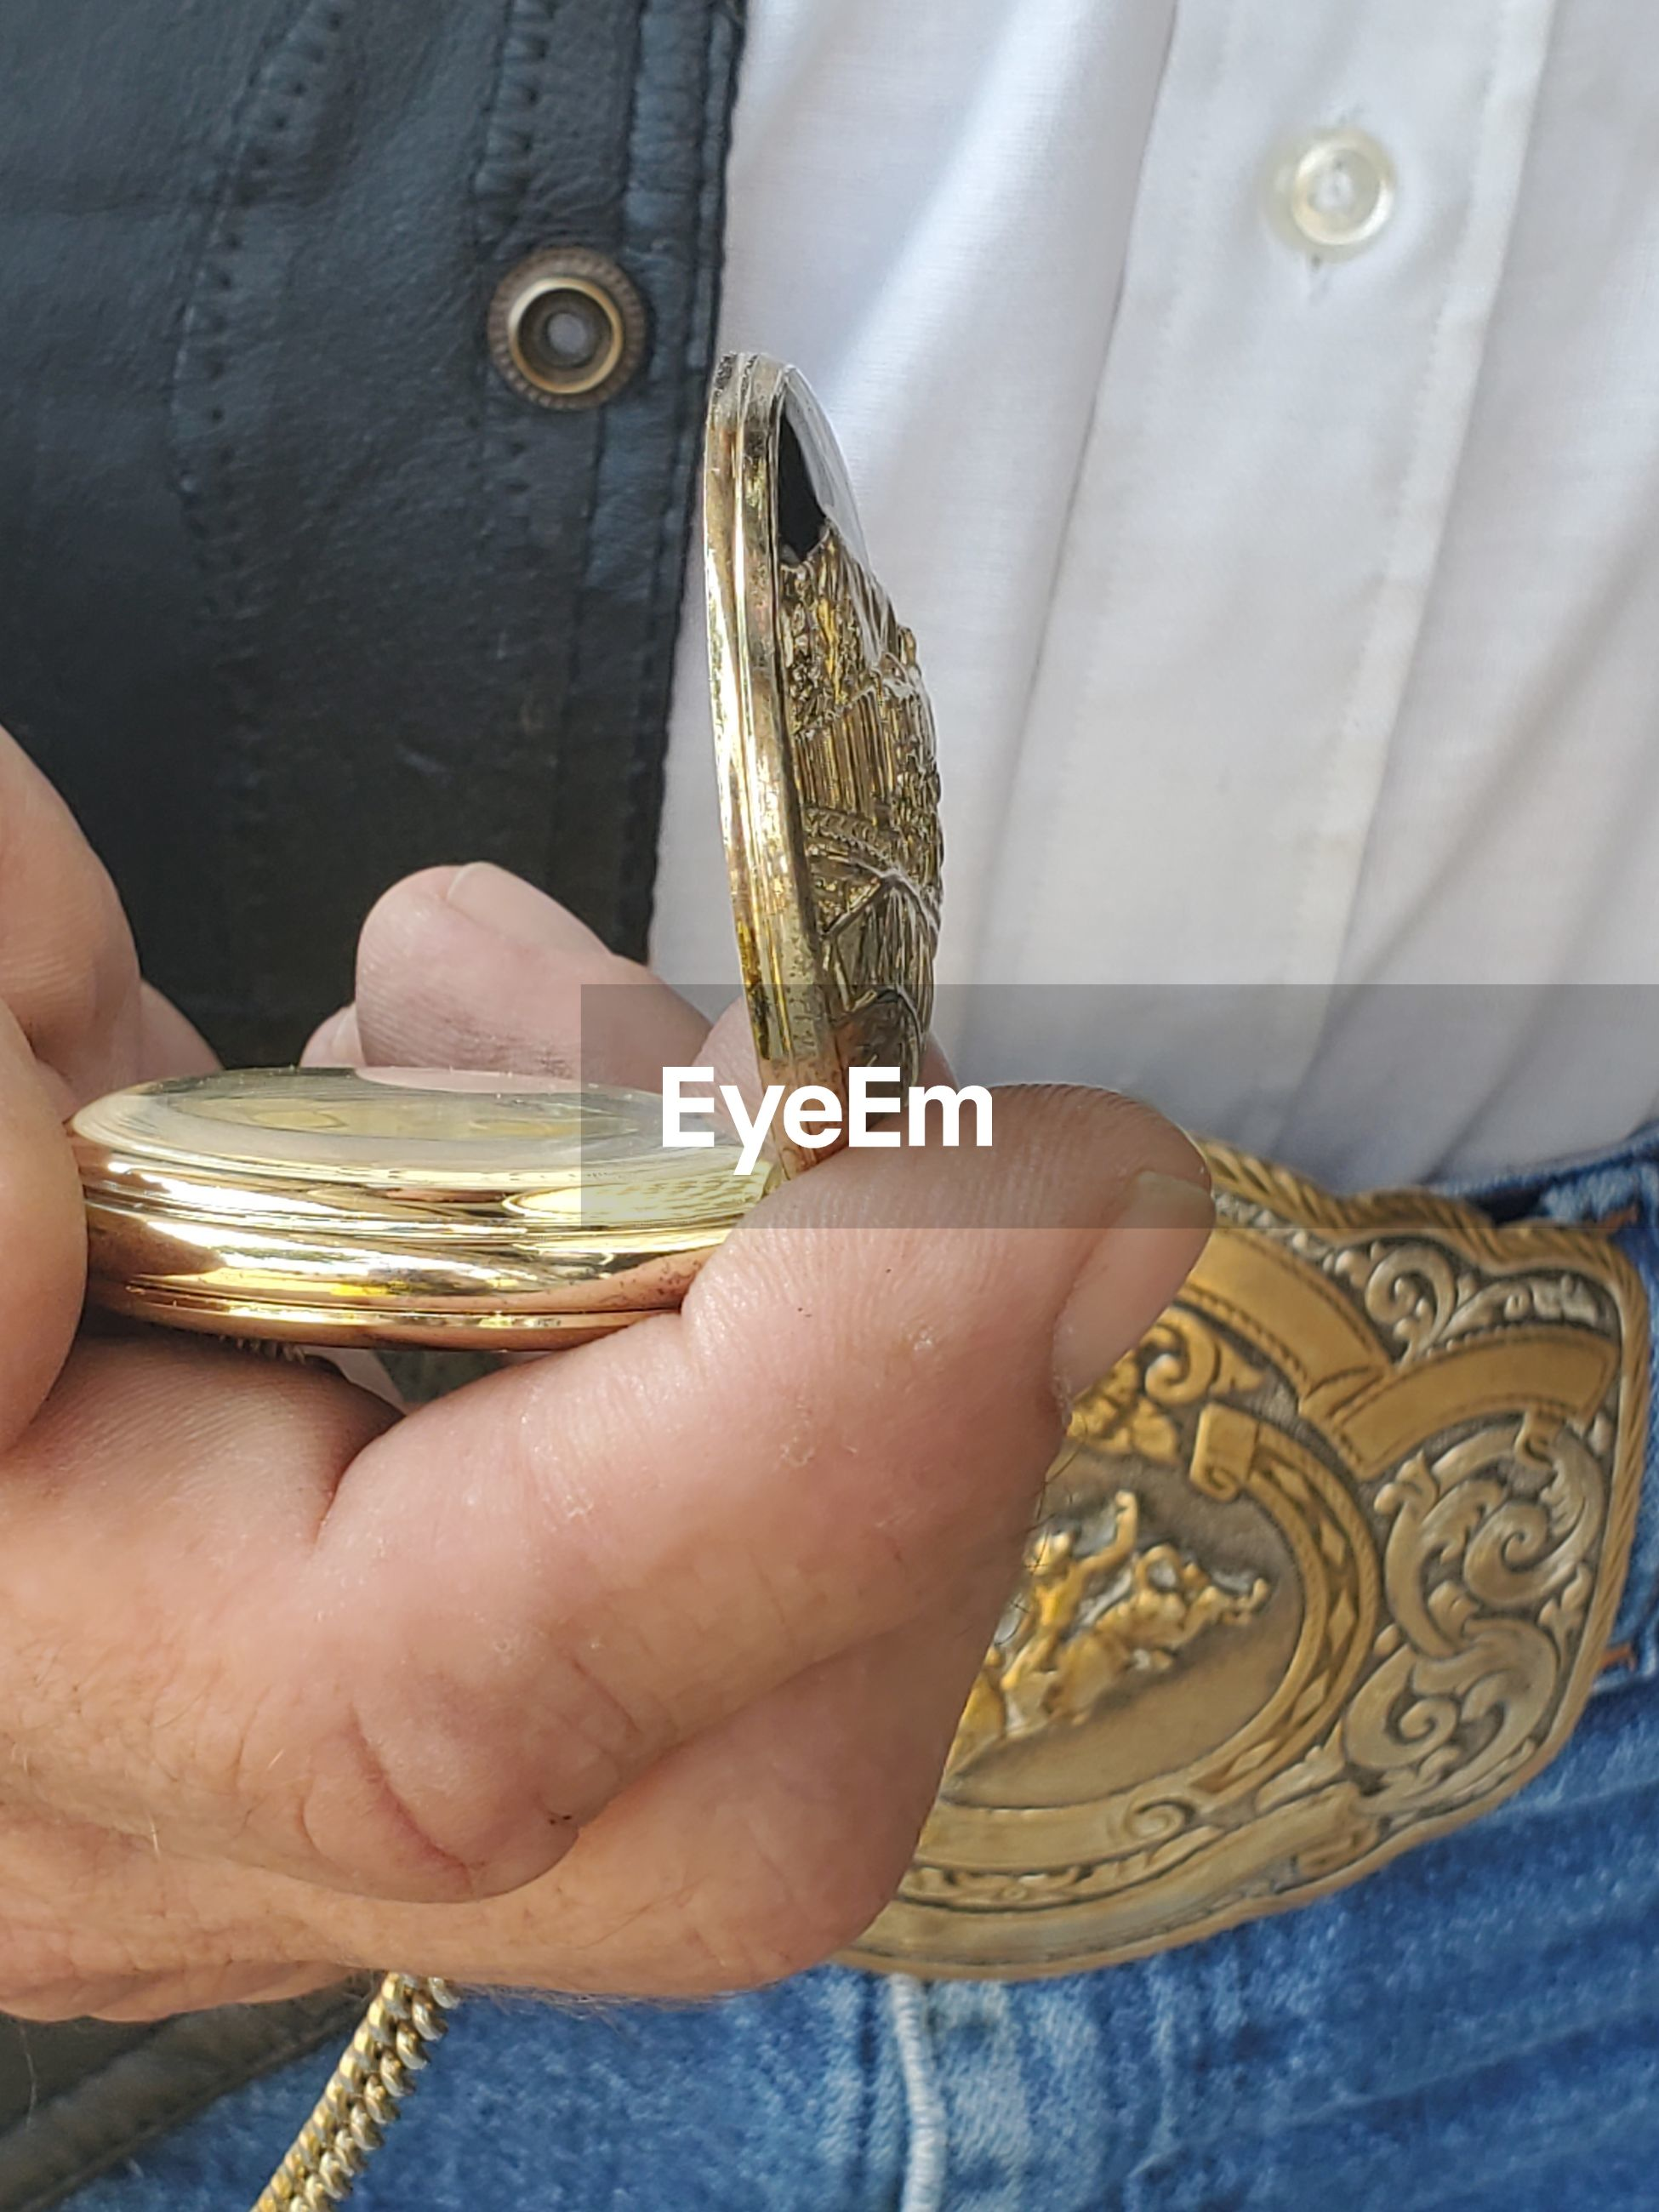 Midsection of person holding gold colored pocket watch